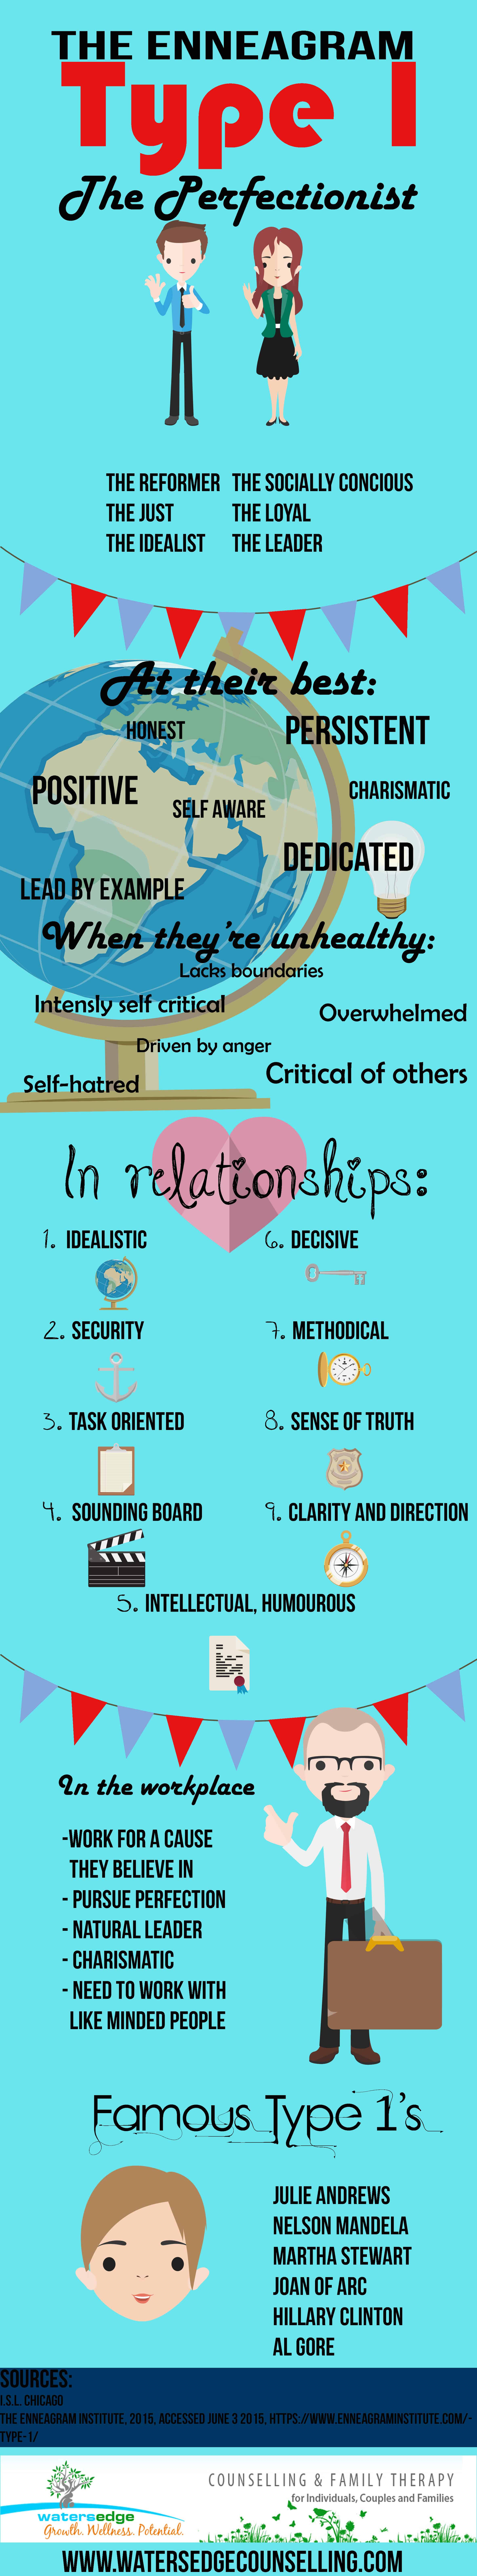 enneagram type 8 and 9 relationship stages